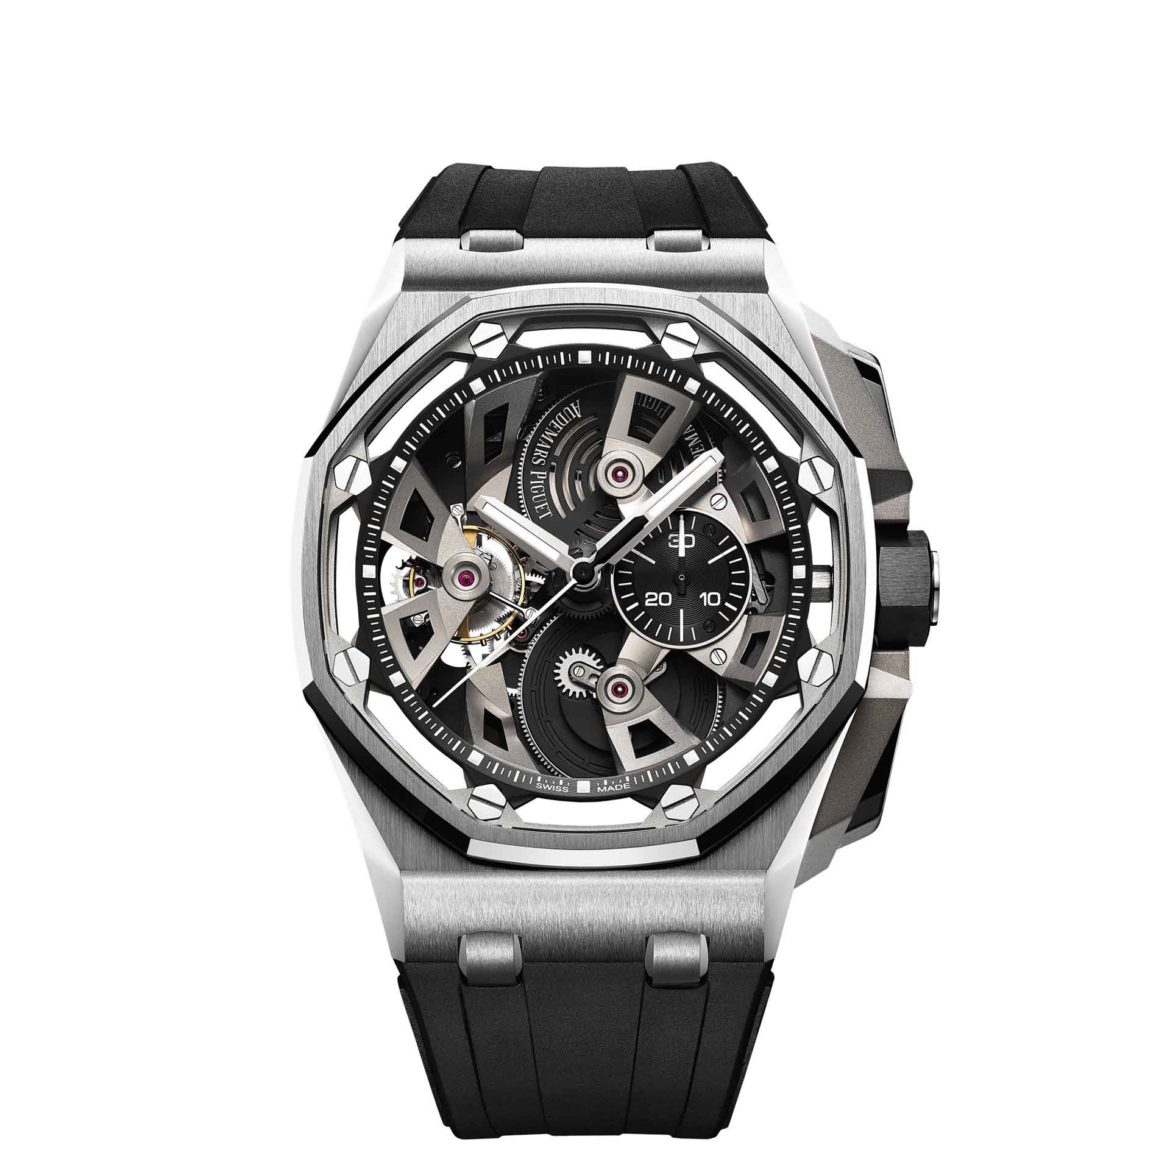 Audemars Piguet Royal Oak Offshore Tourbillon Chronograph 25th Anniversary